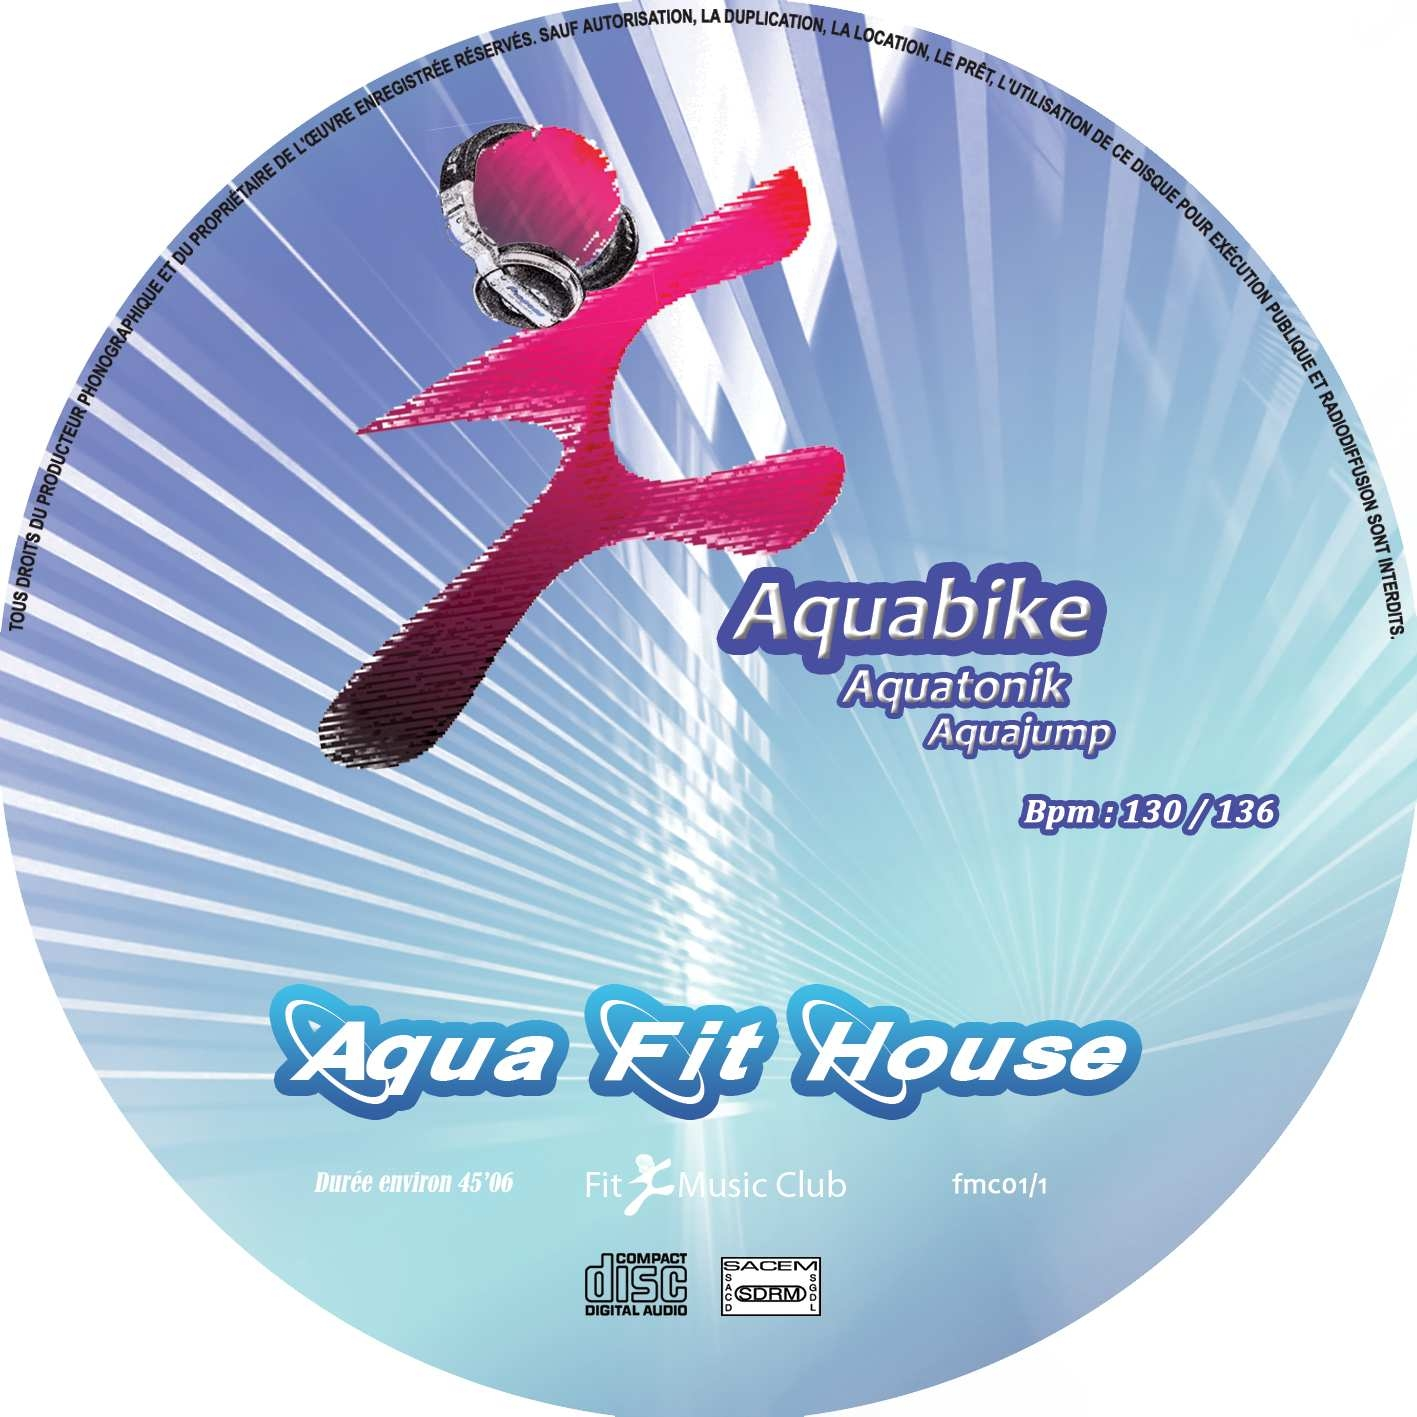 Aqua Fit House / Aquabike / Aquatonik / Aquajump